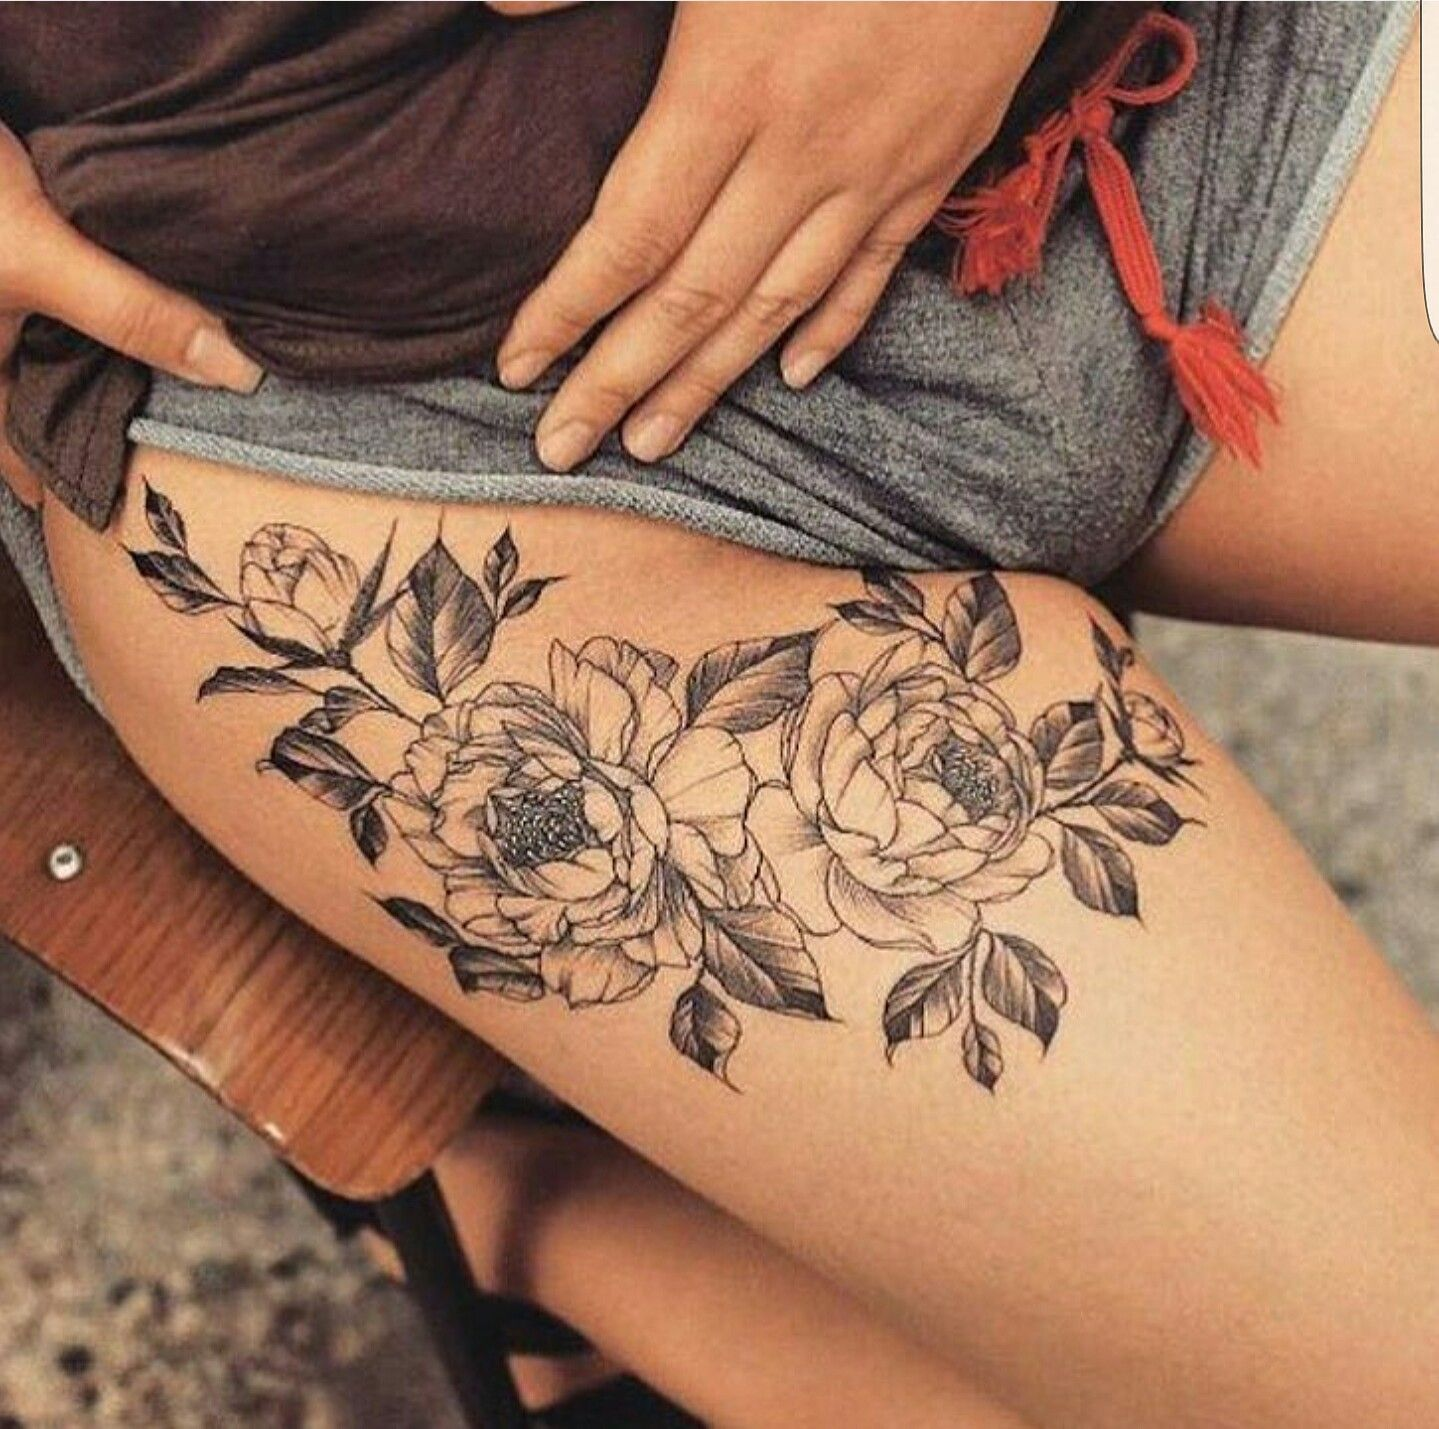 Pin by rebecca mcdaid on tattoos pinterest tattoo piercings and